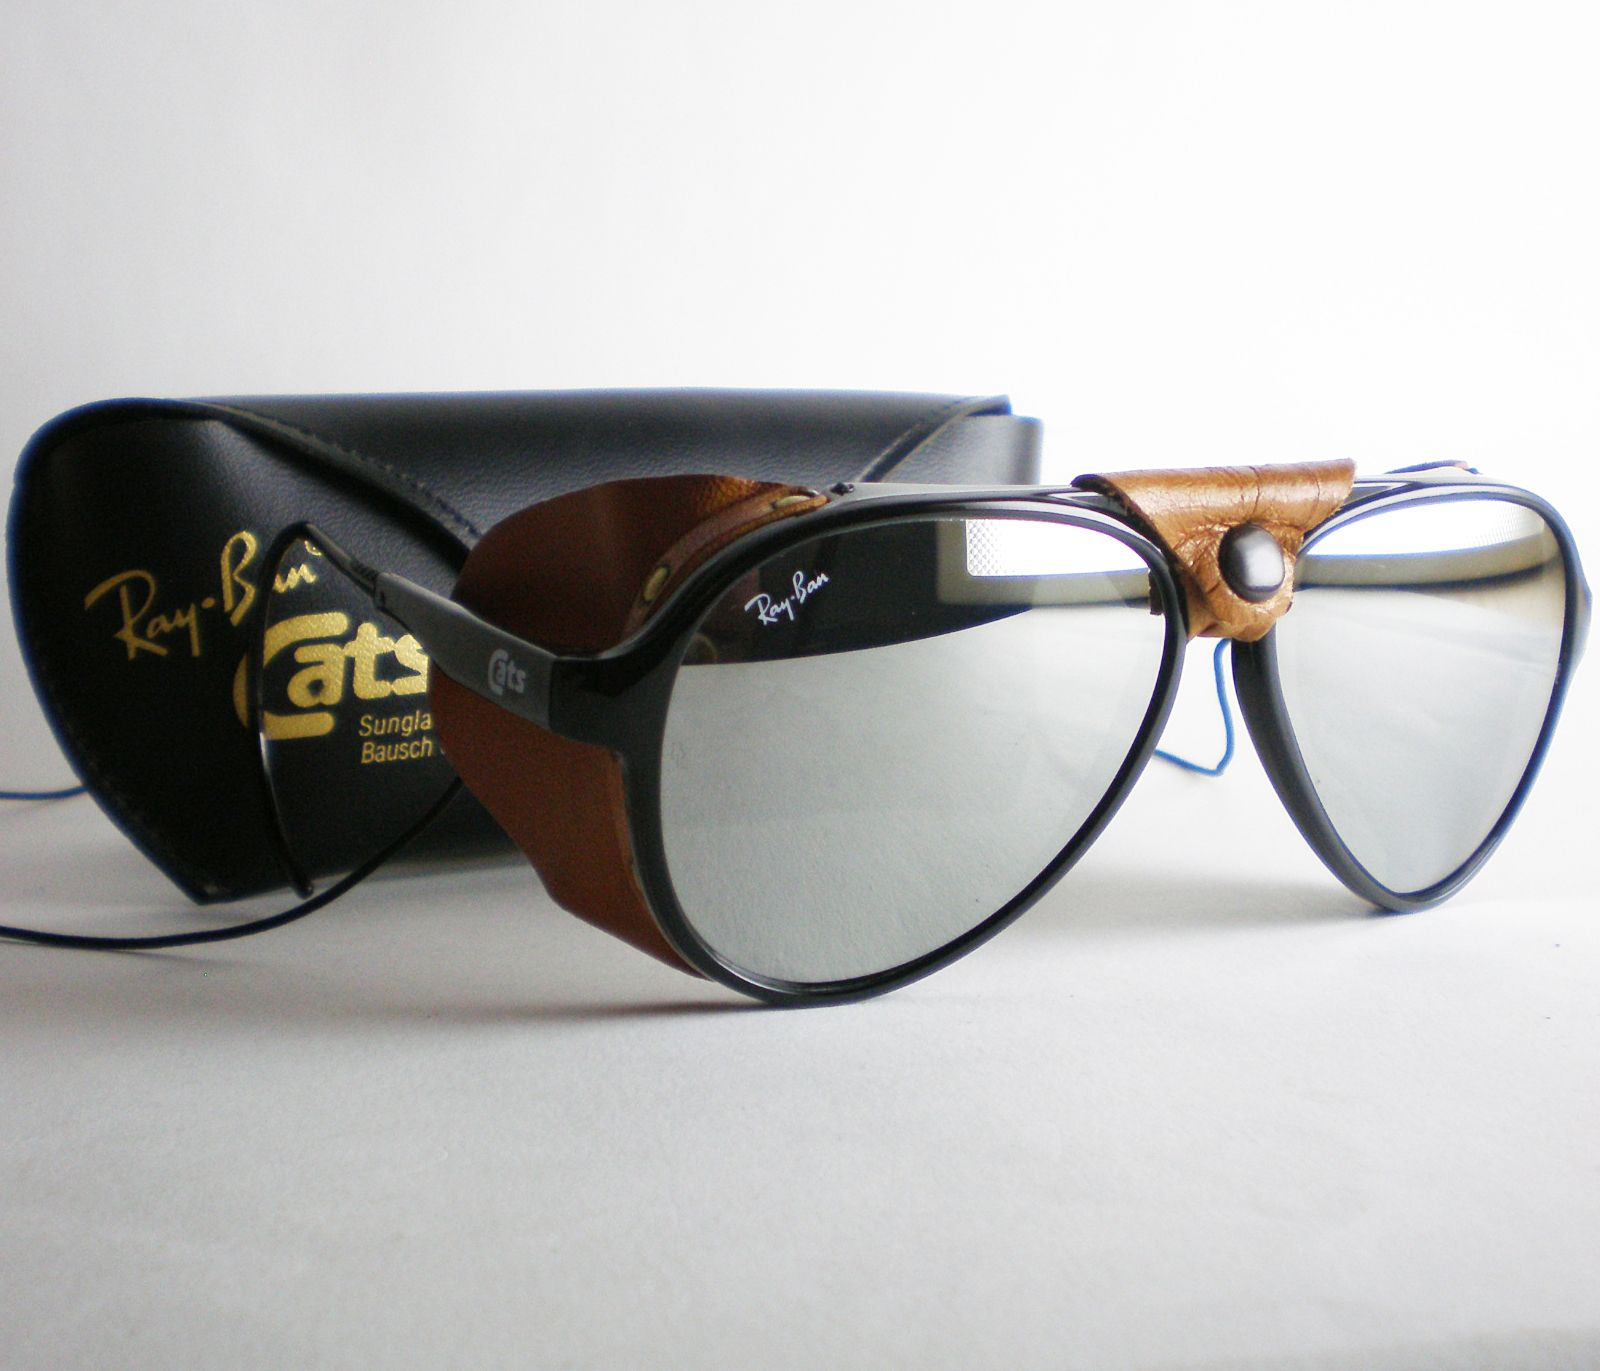 d6e1b124eeda Vintage Ray Ban CATS 8000 MIRRORED Sunglasses aviator side shield leathers  black